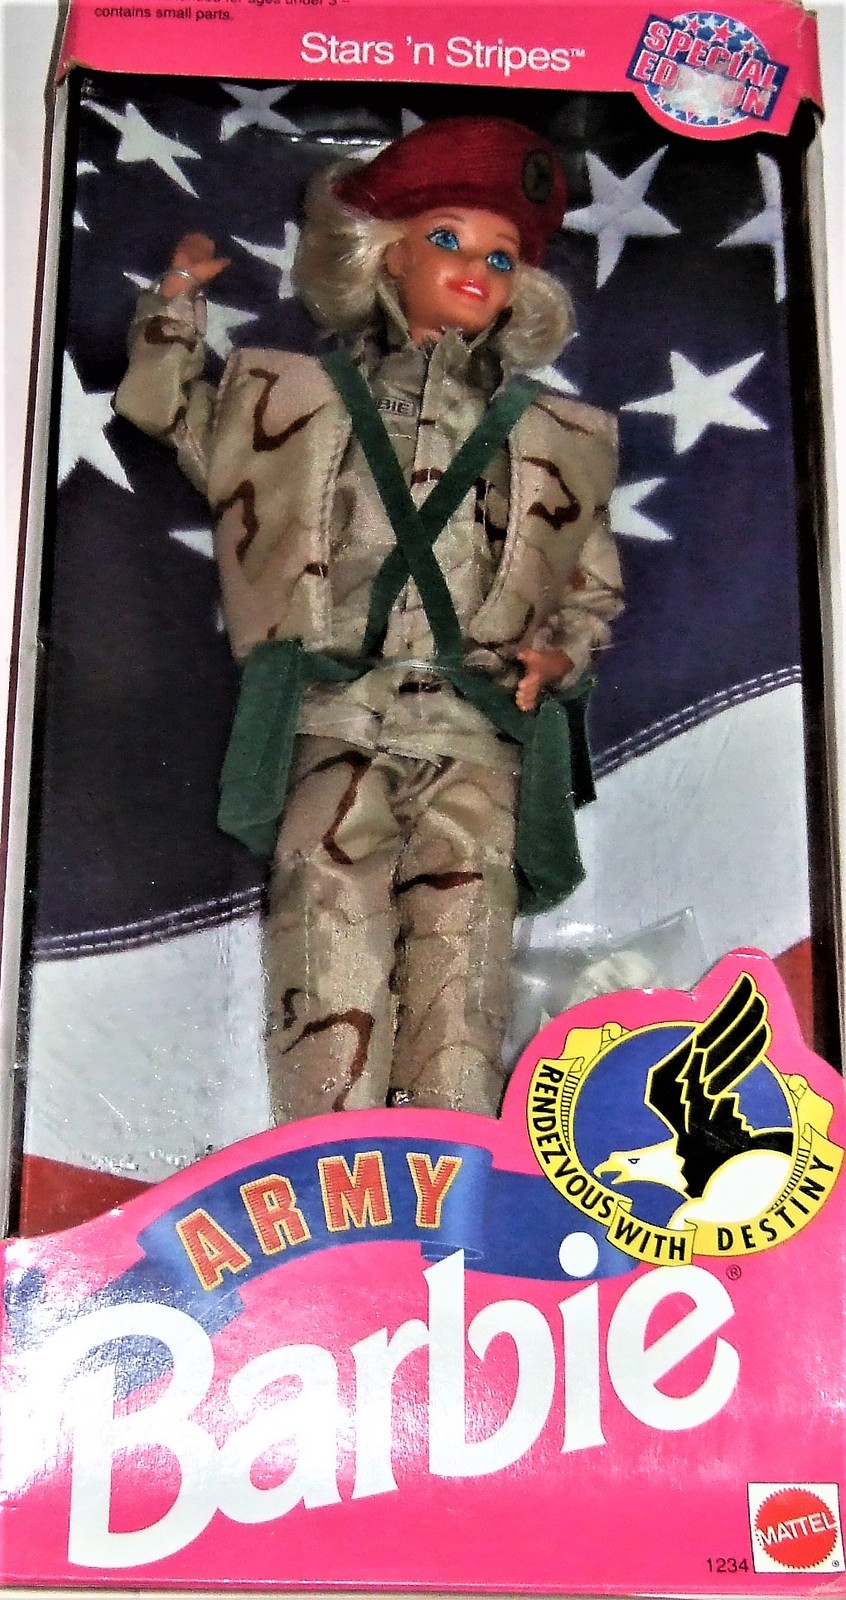 Primary image for Barbie Doll - Specail Edition Stars n Stripes Army Barbie